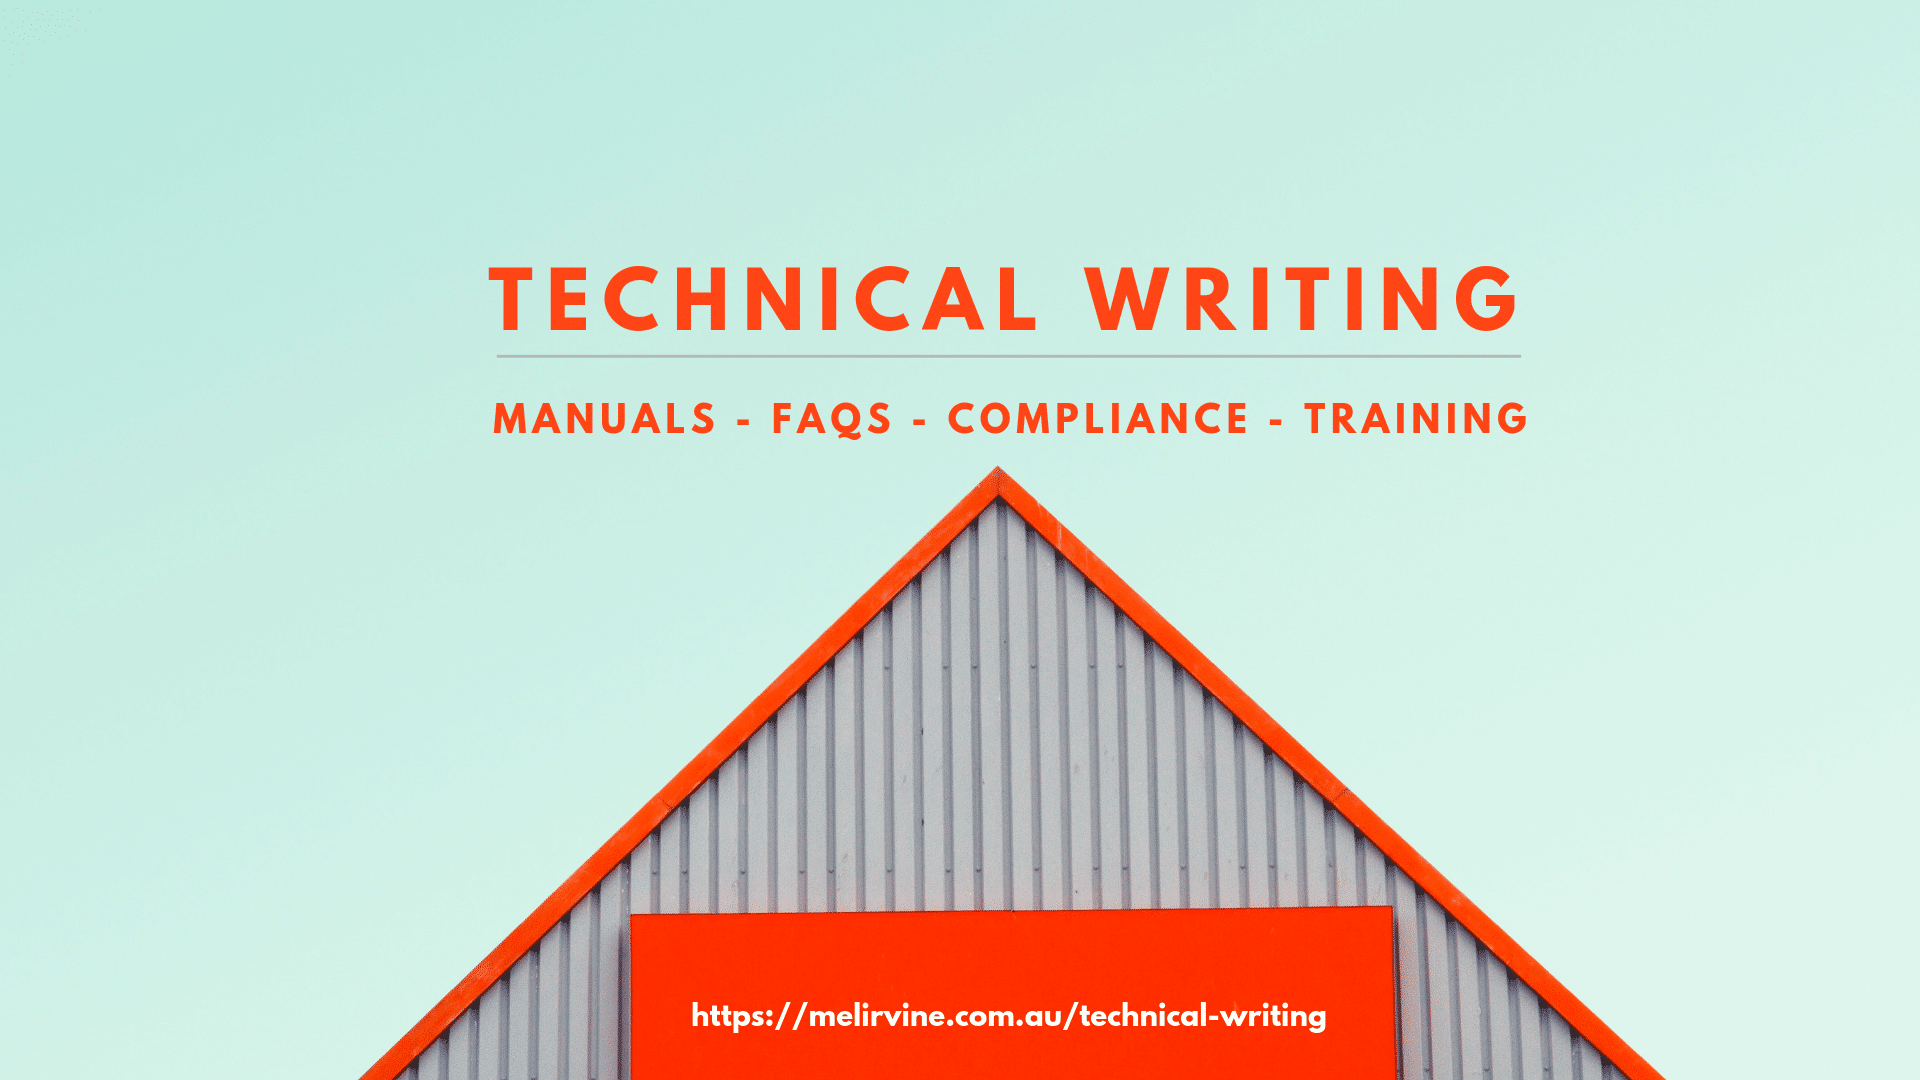 Melinda J. Irvine is a technical writer